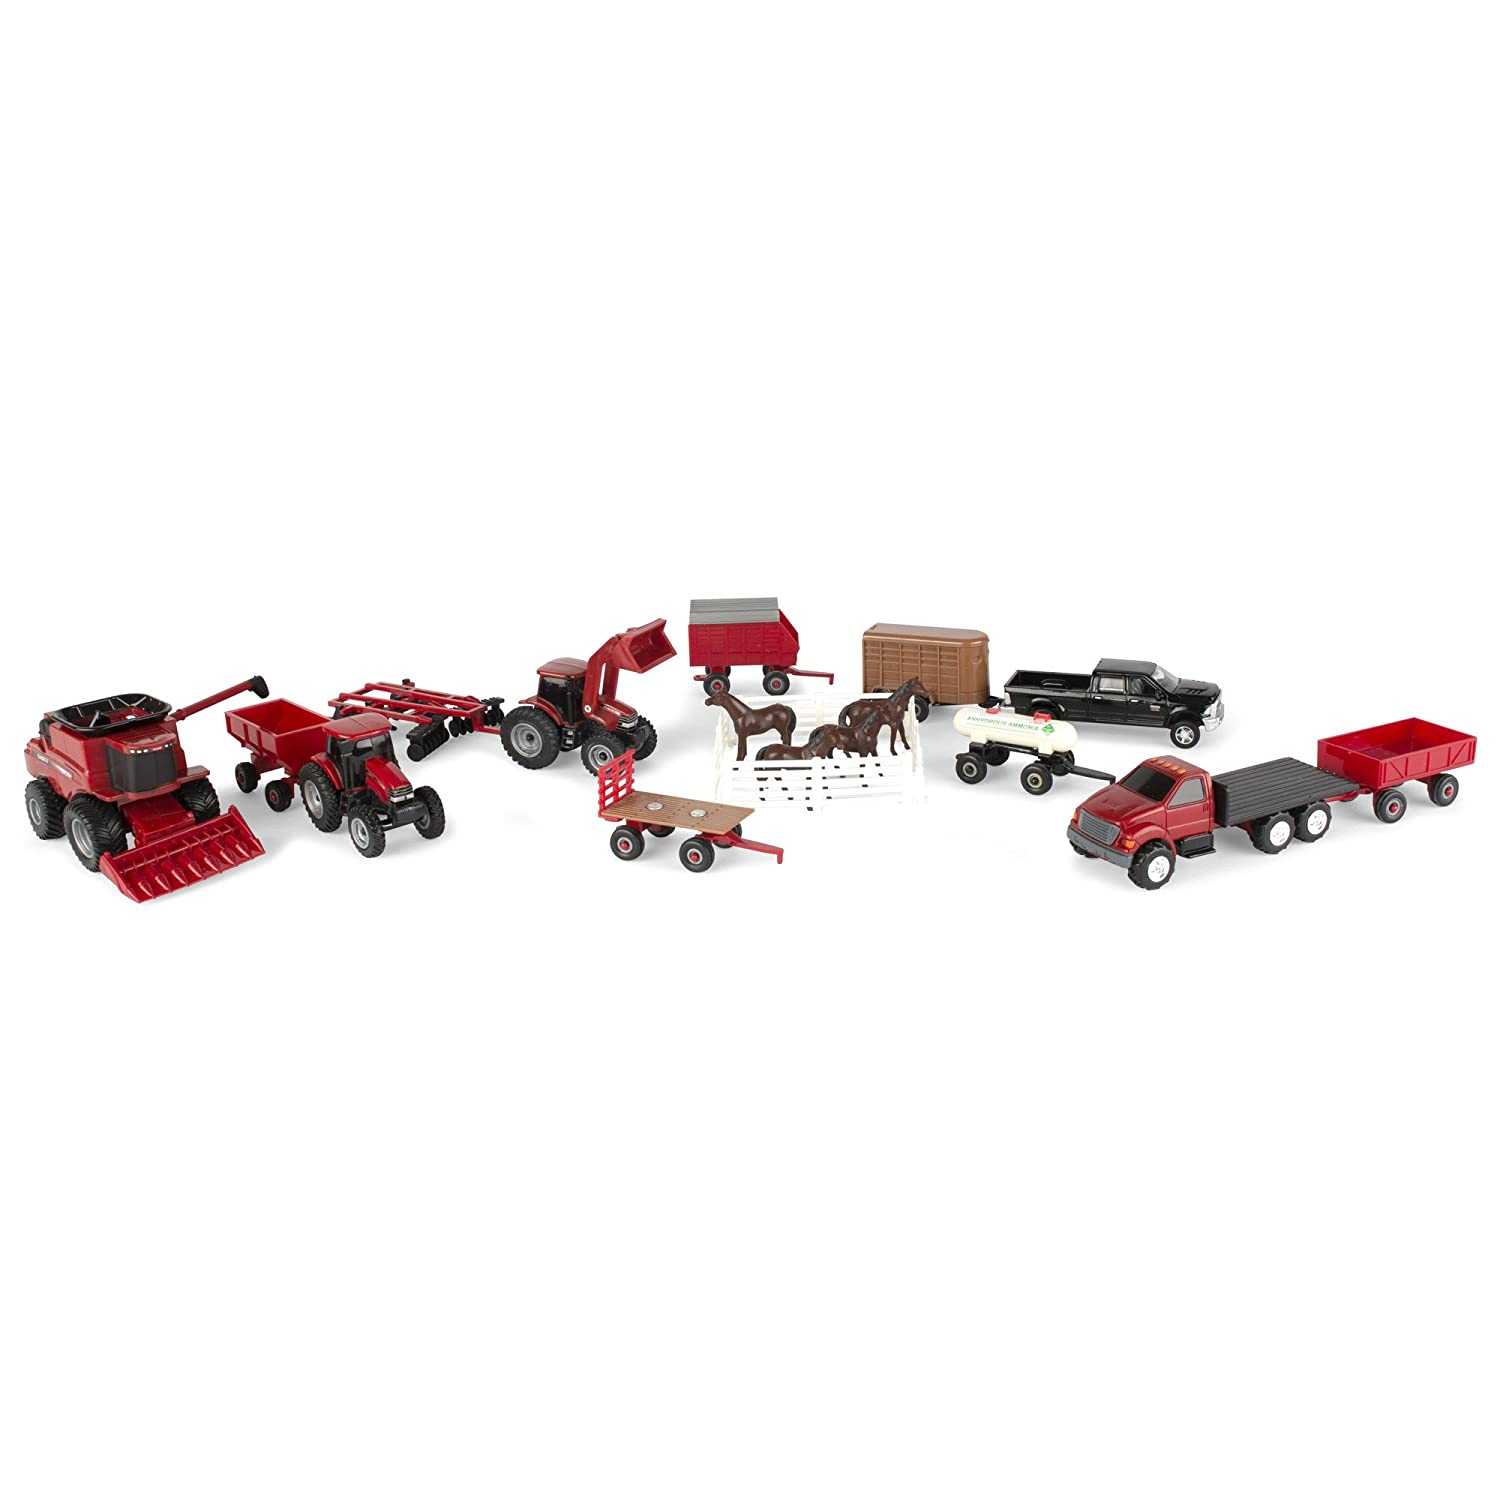 ERTL 44091 Case Vehicle Value Set